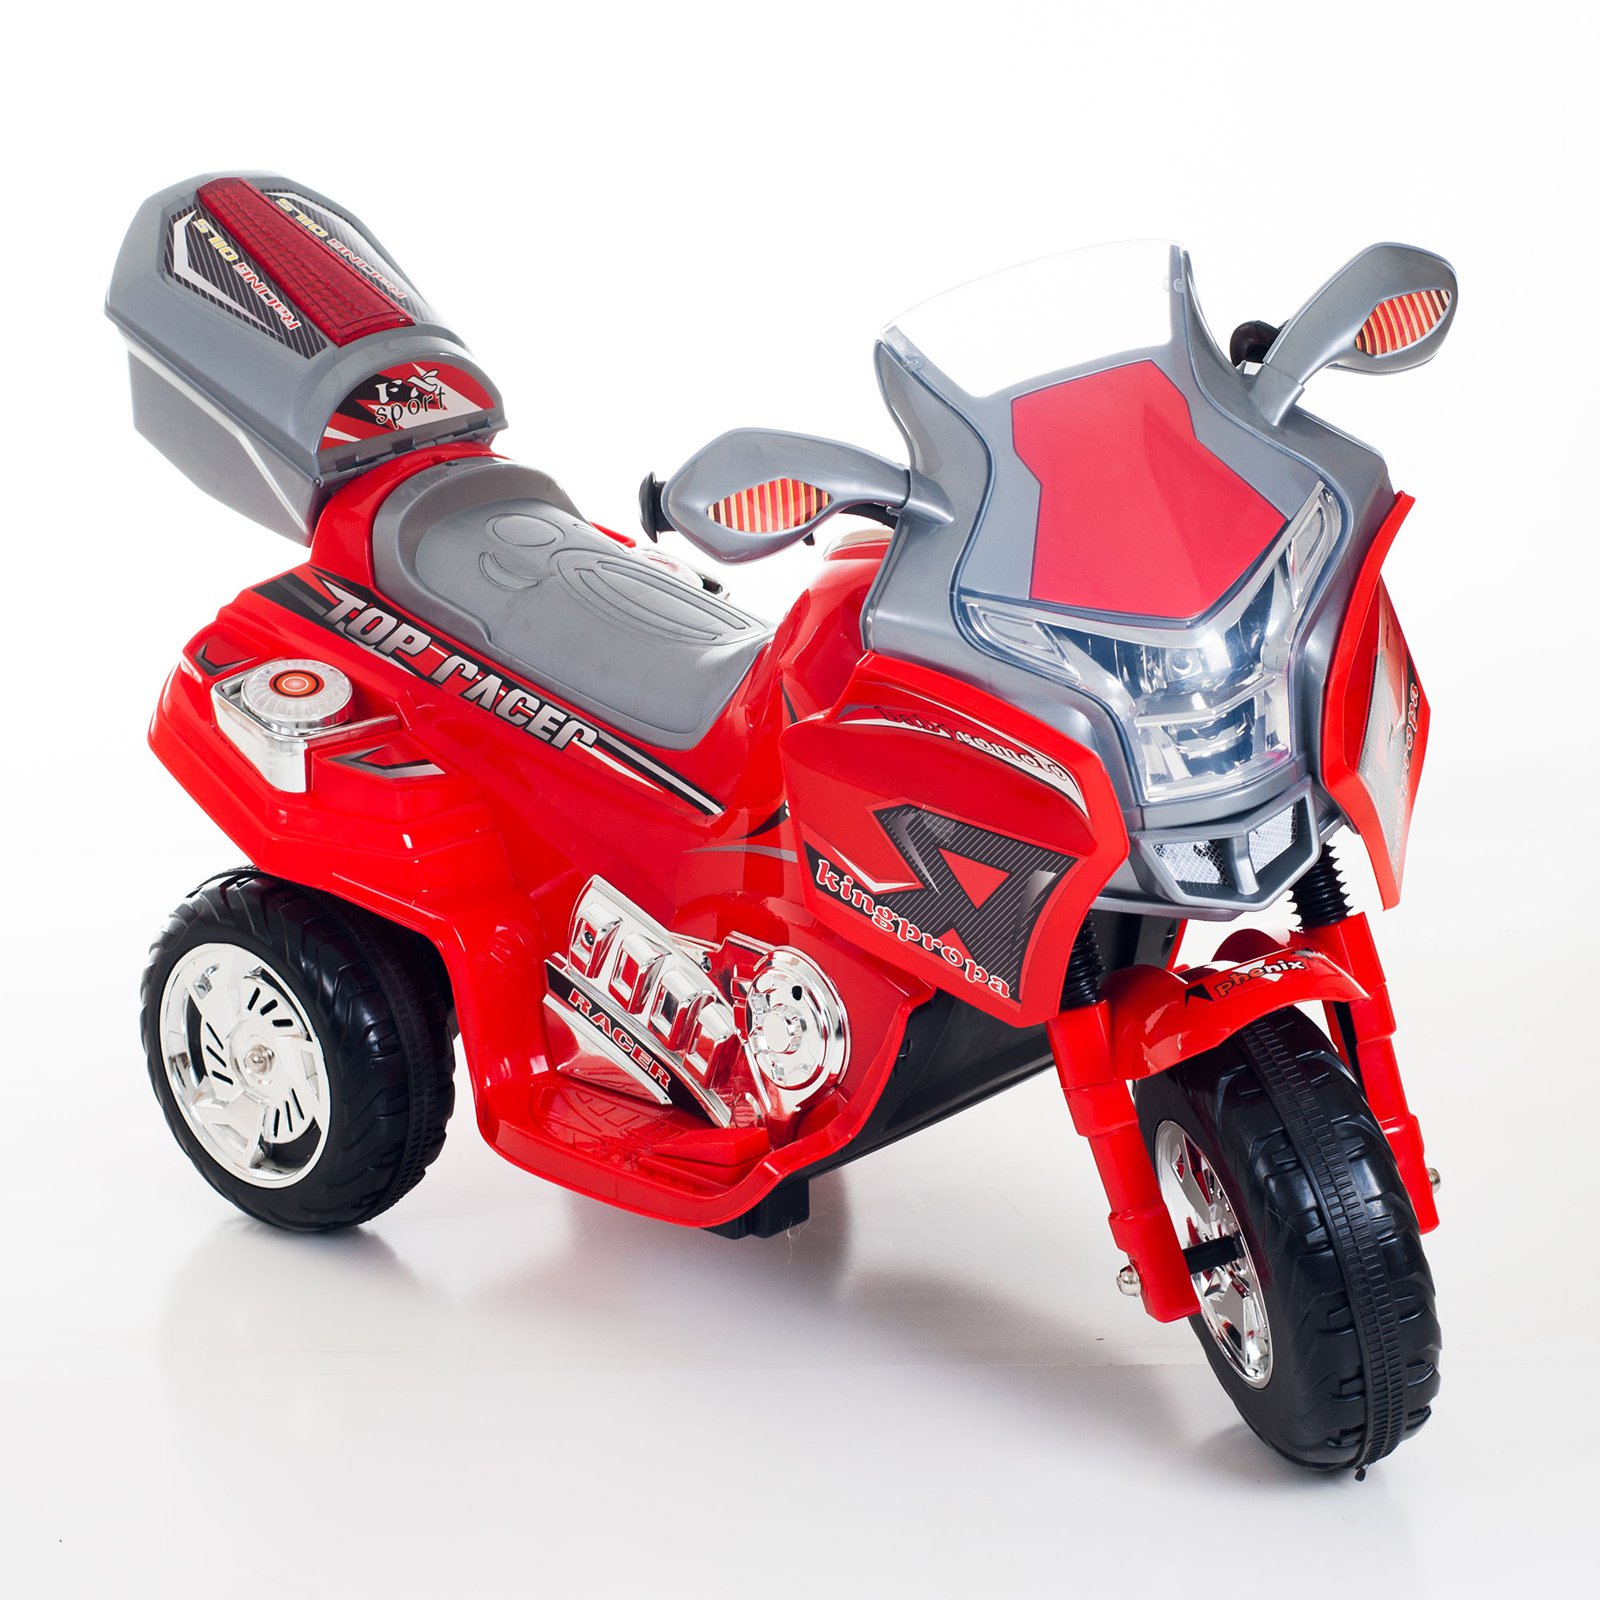 Ride on Toy, 3 Wheel Motorcycle Trike for Kids, Battery Powered Ride On Toy by Lil' Rider... by Trademark Global LLC